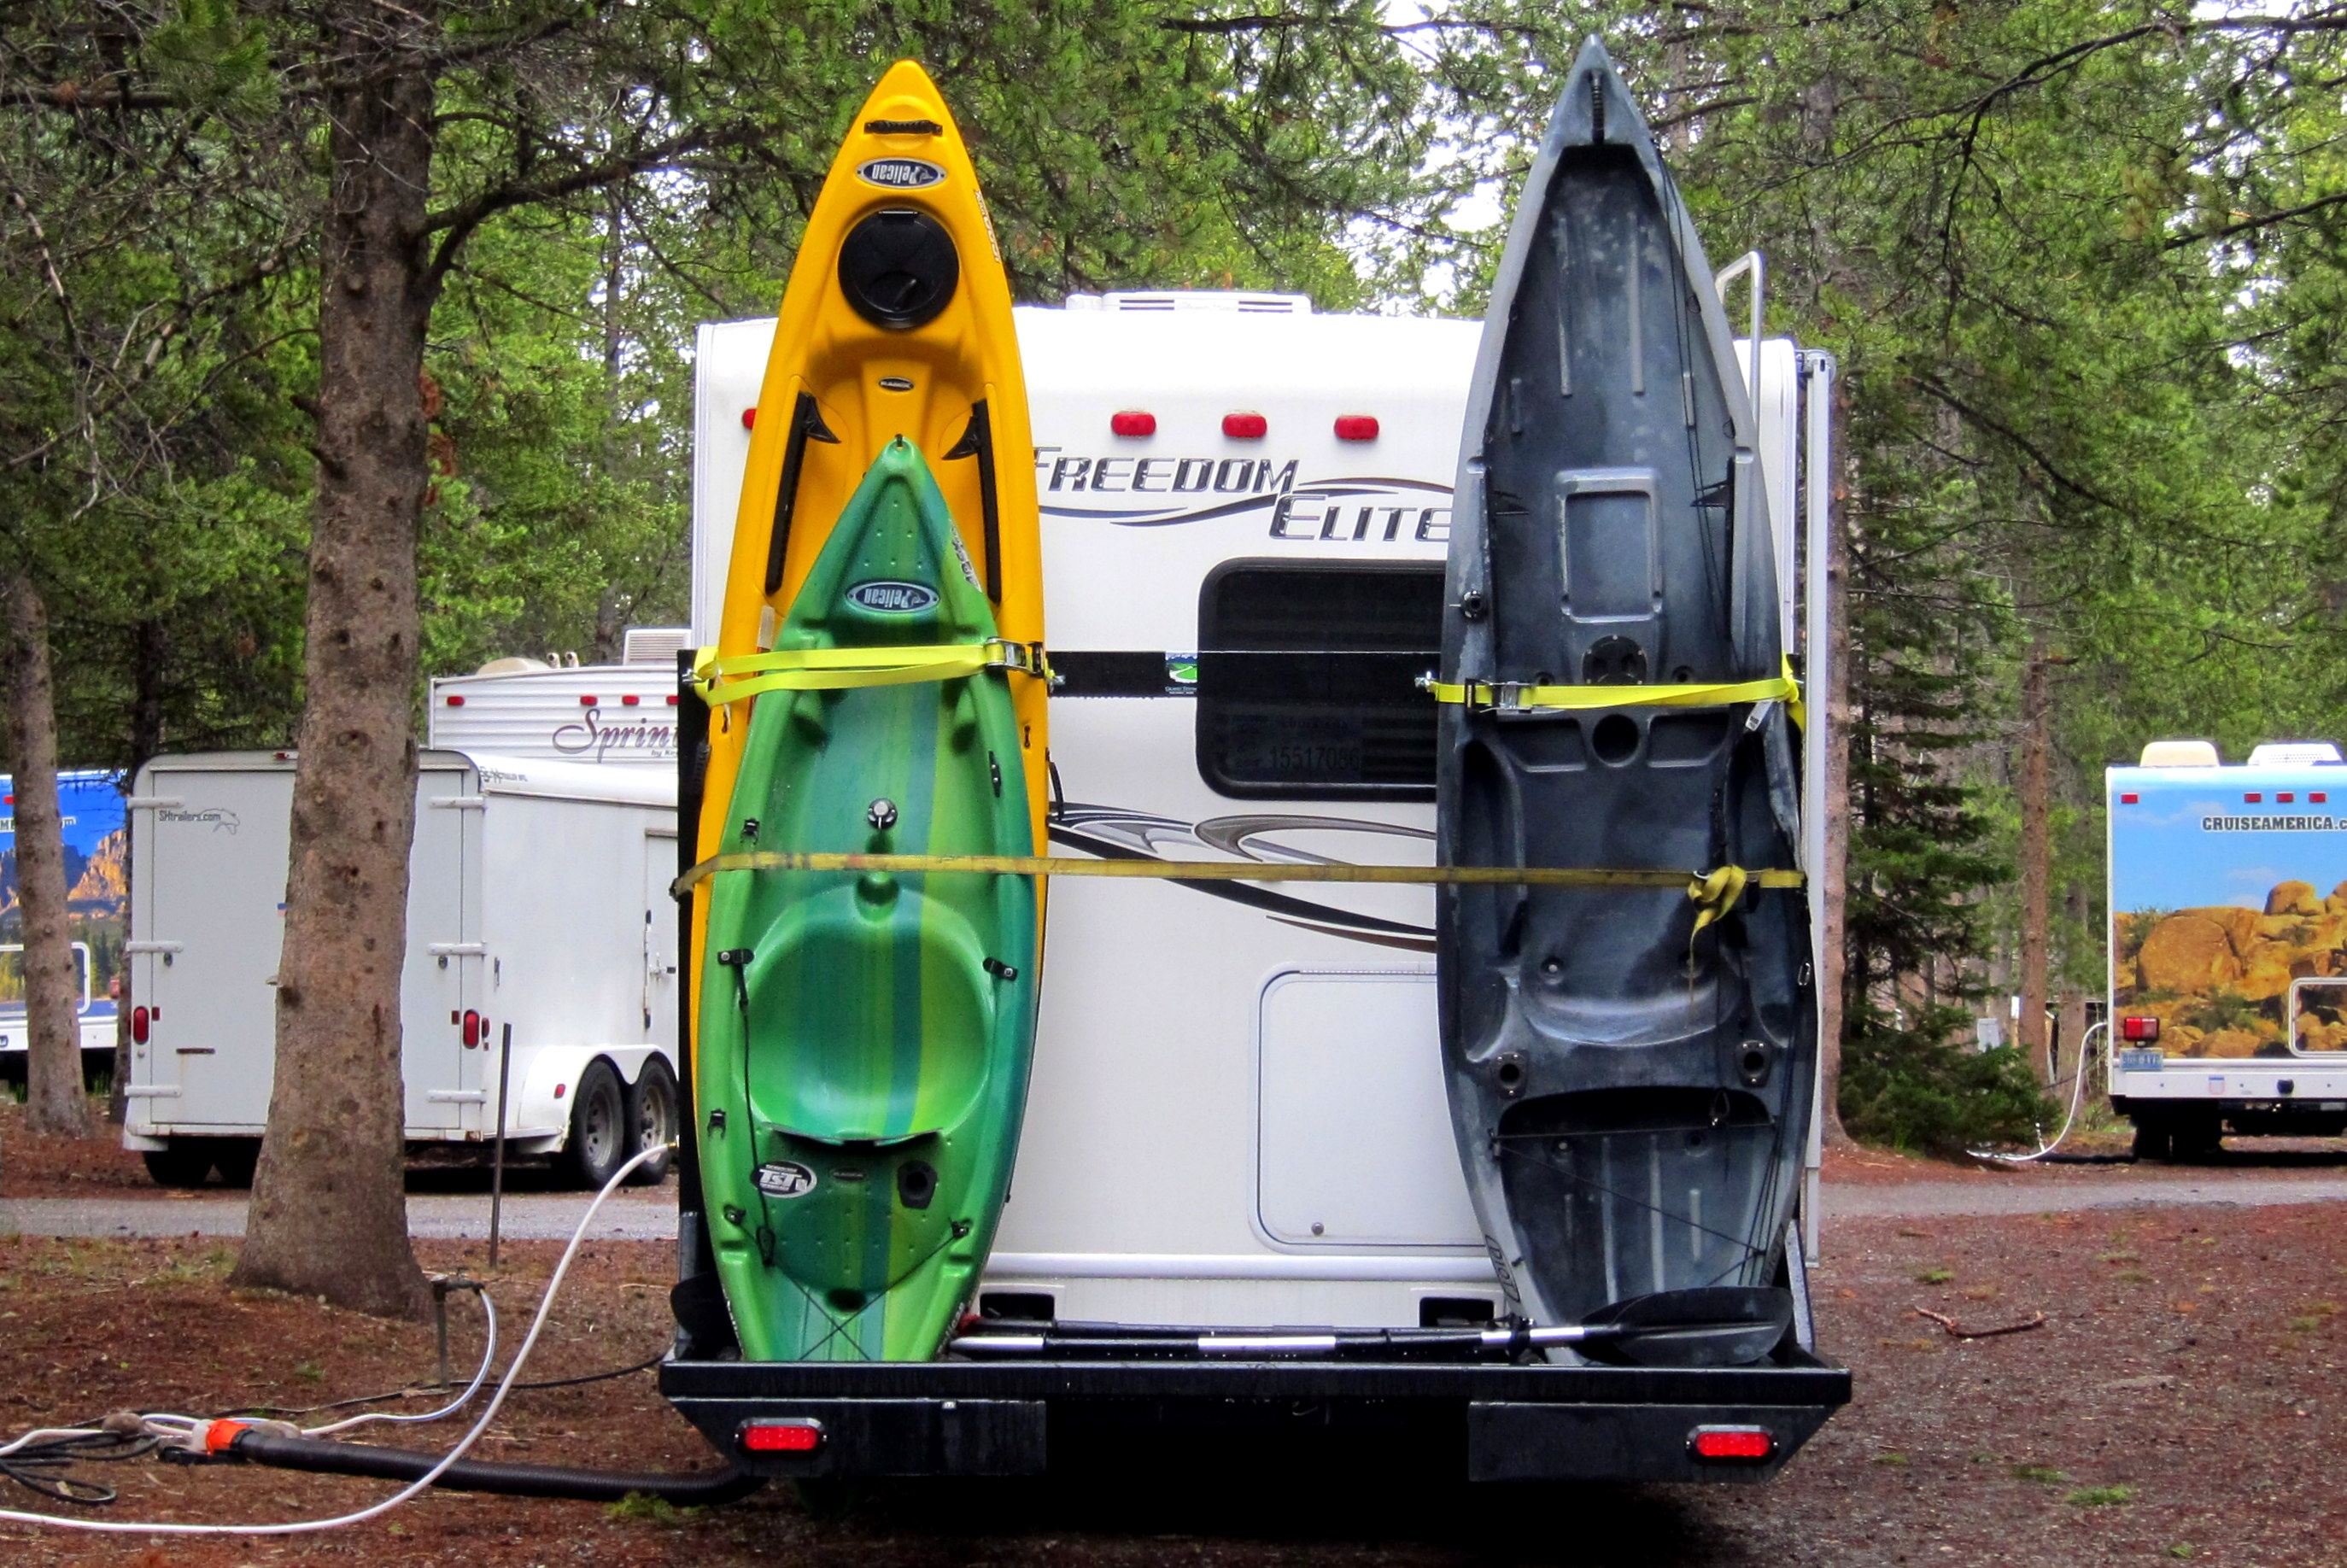 pin kayak by rv and on racks rack camper brede pinterest life patty camping vacation